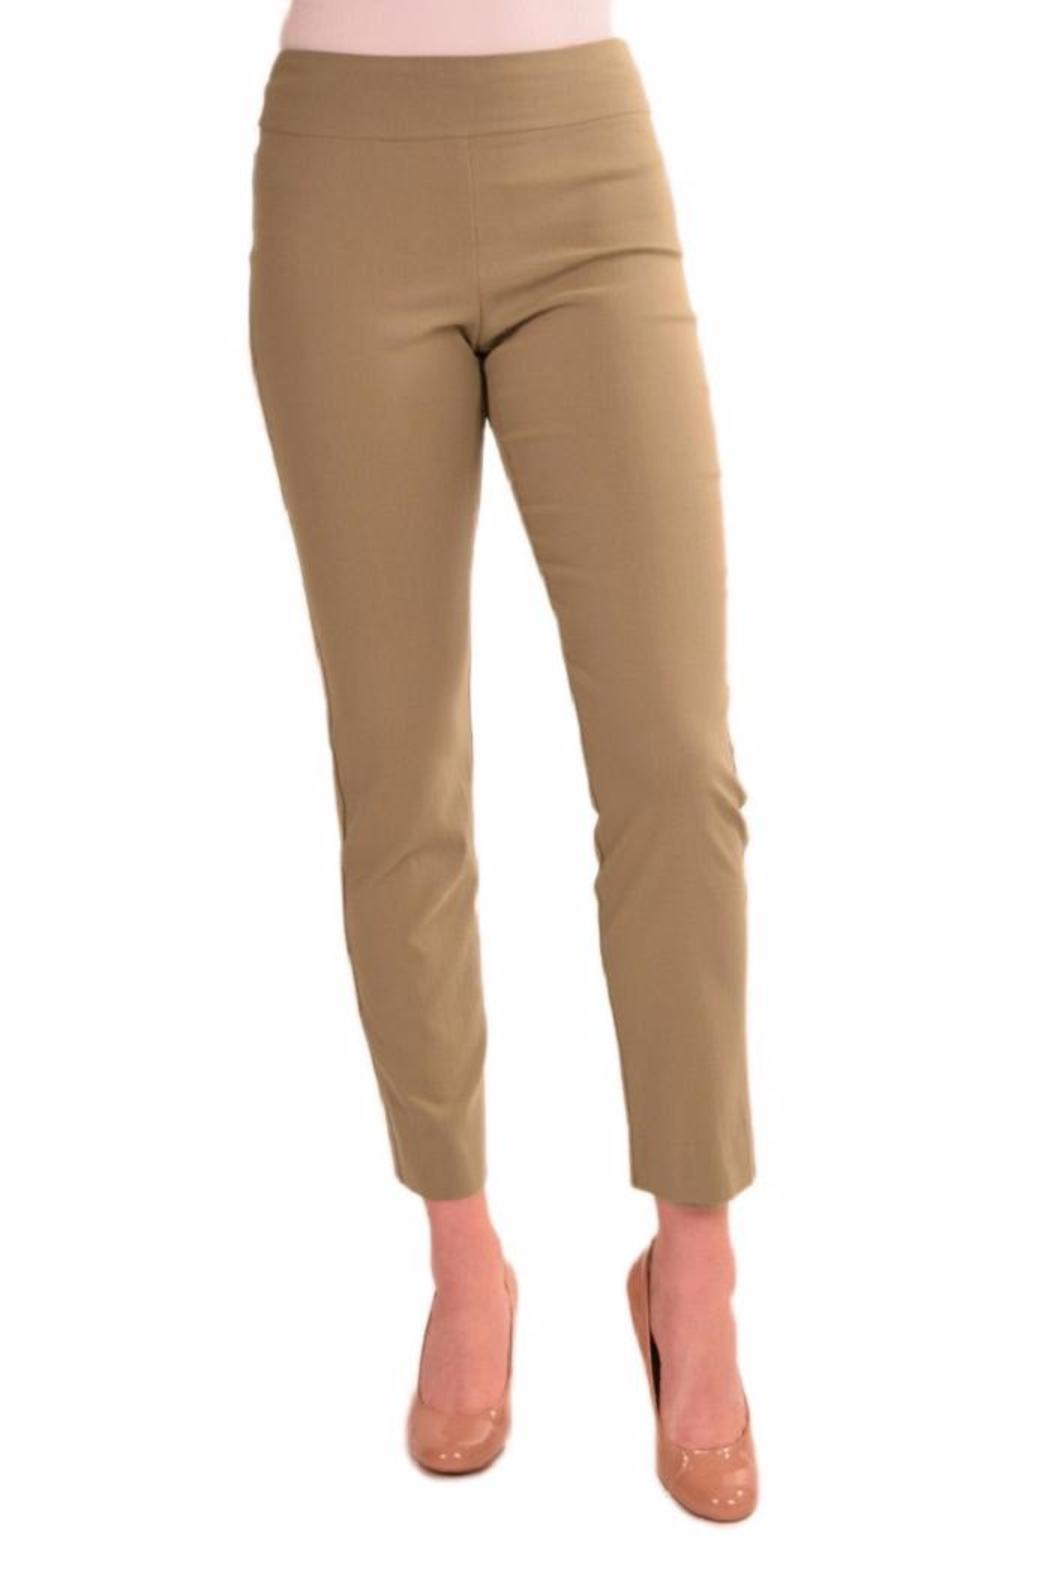 Krazy Larry Solid Pull-On Pant - Front Cropped Image